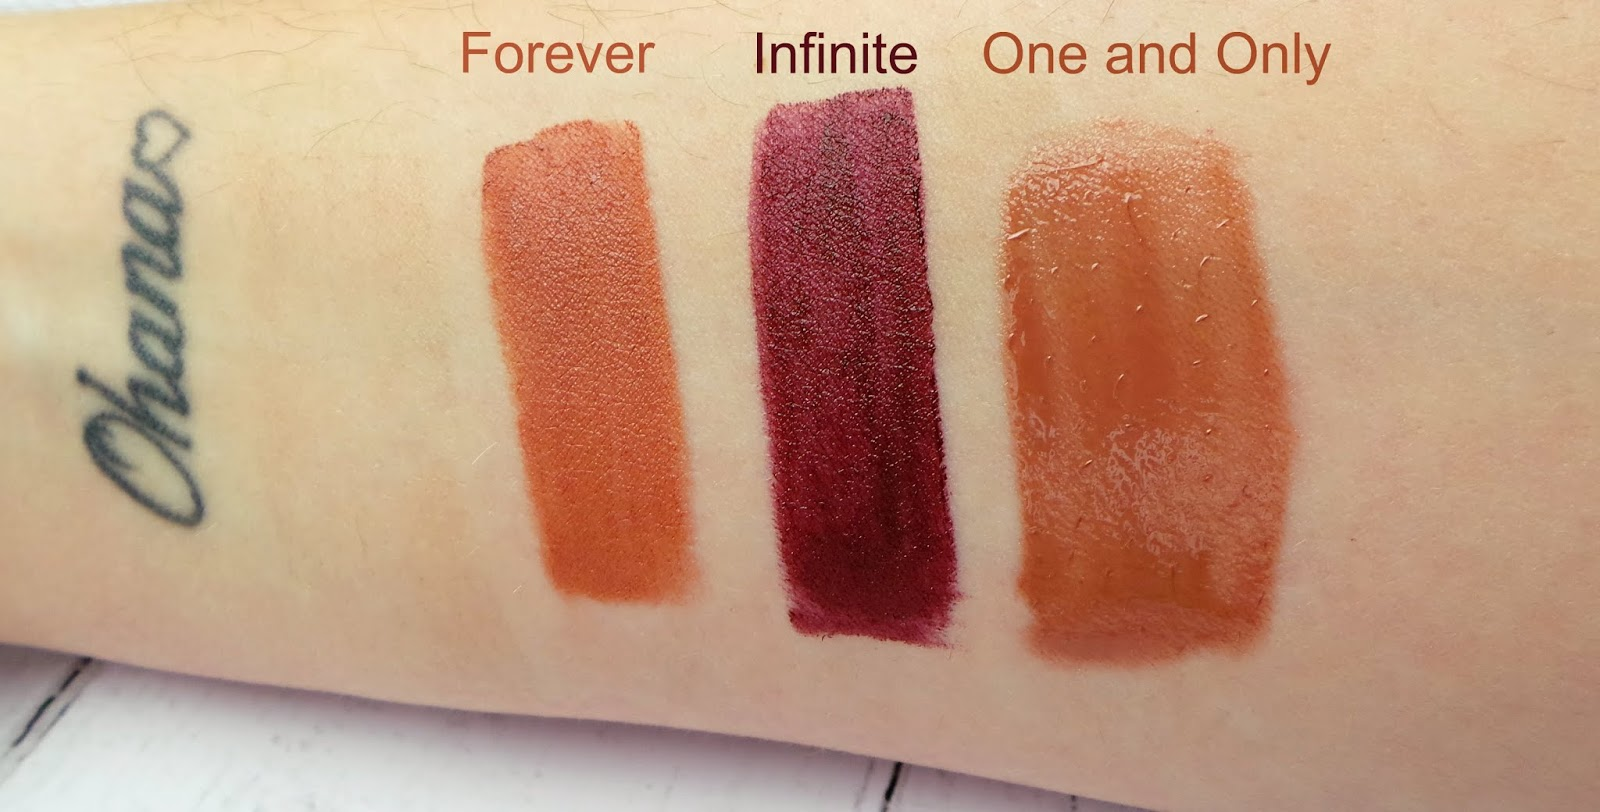 Mickey lip Collection swatches left is the nude called forever, middle is a deep berry called infinite and right is a nude gloss called one and only